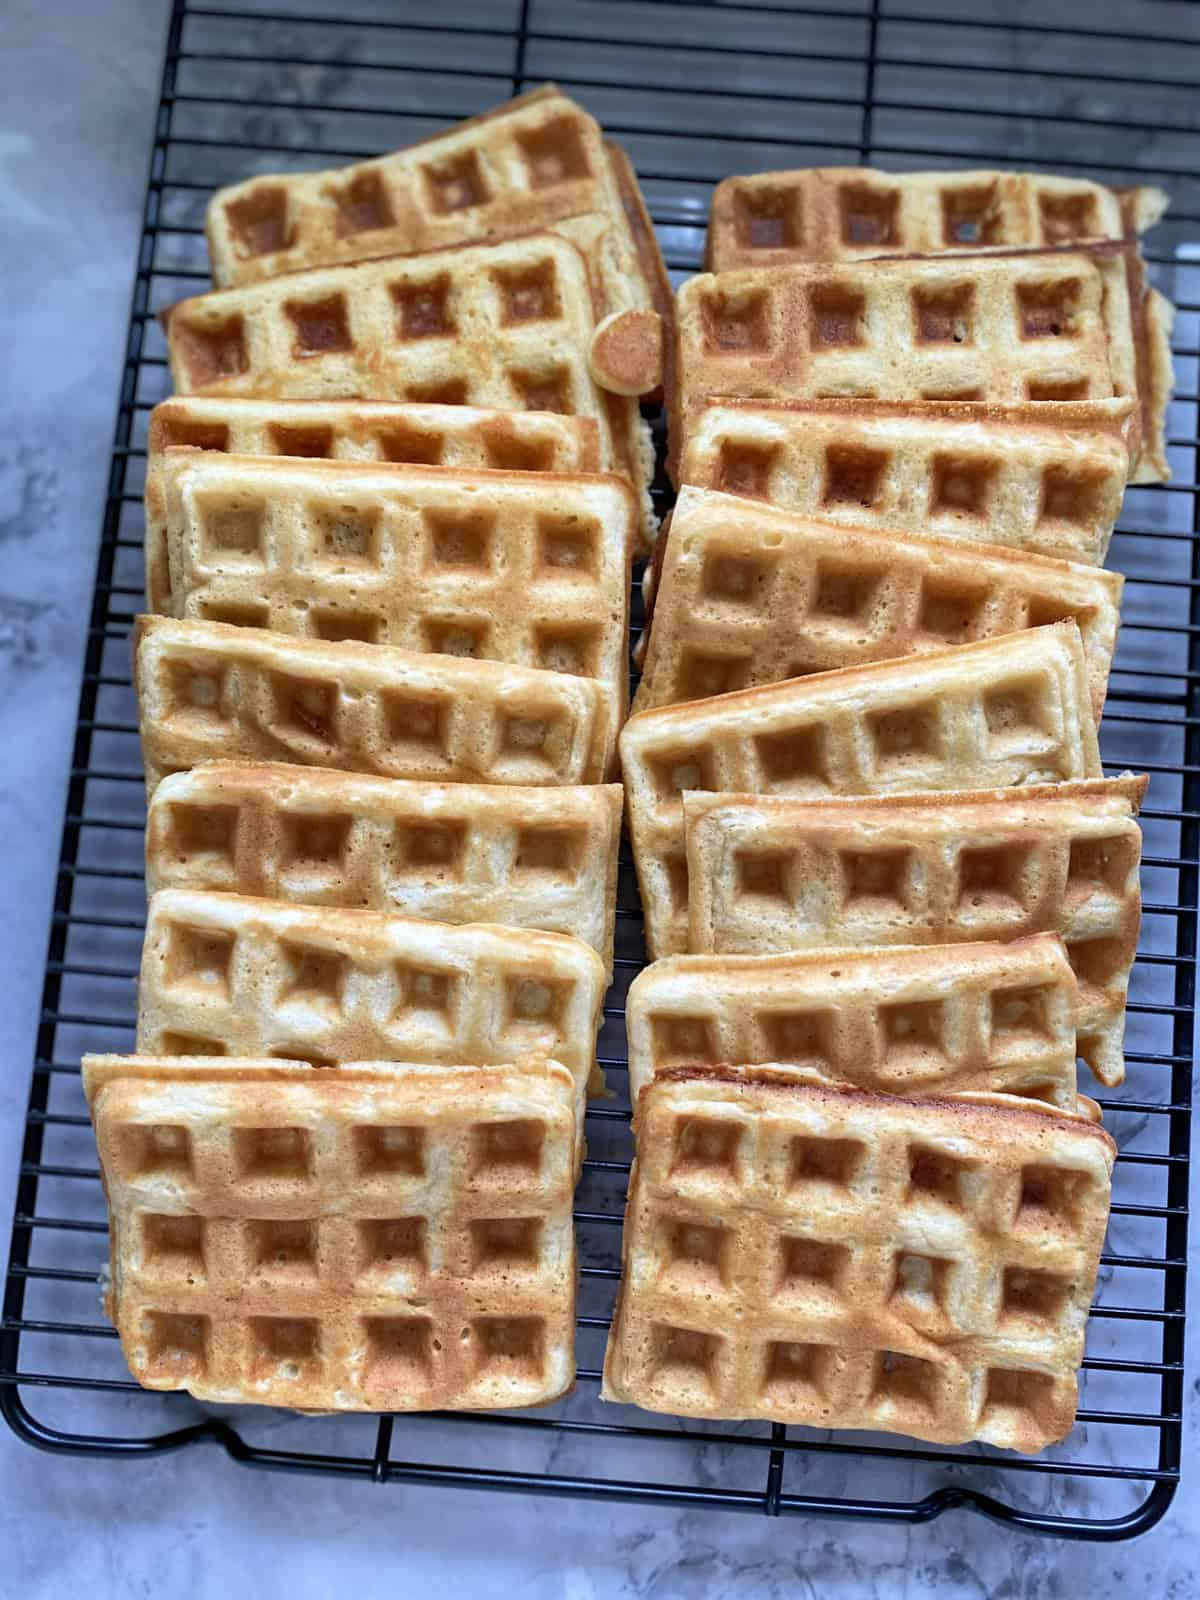 Top view of a black wire rack with rectangular waffles laid out on top of it.